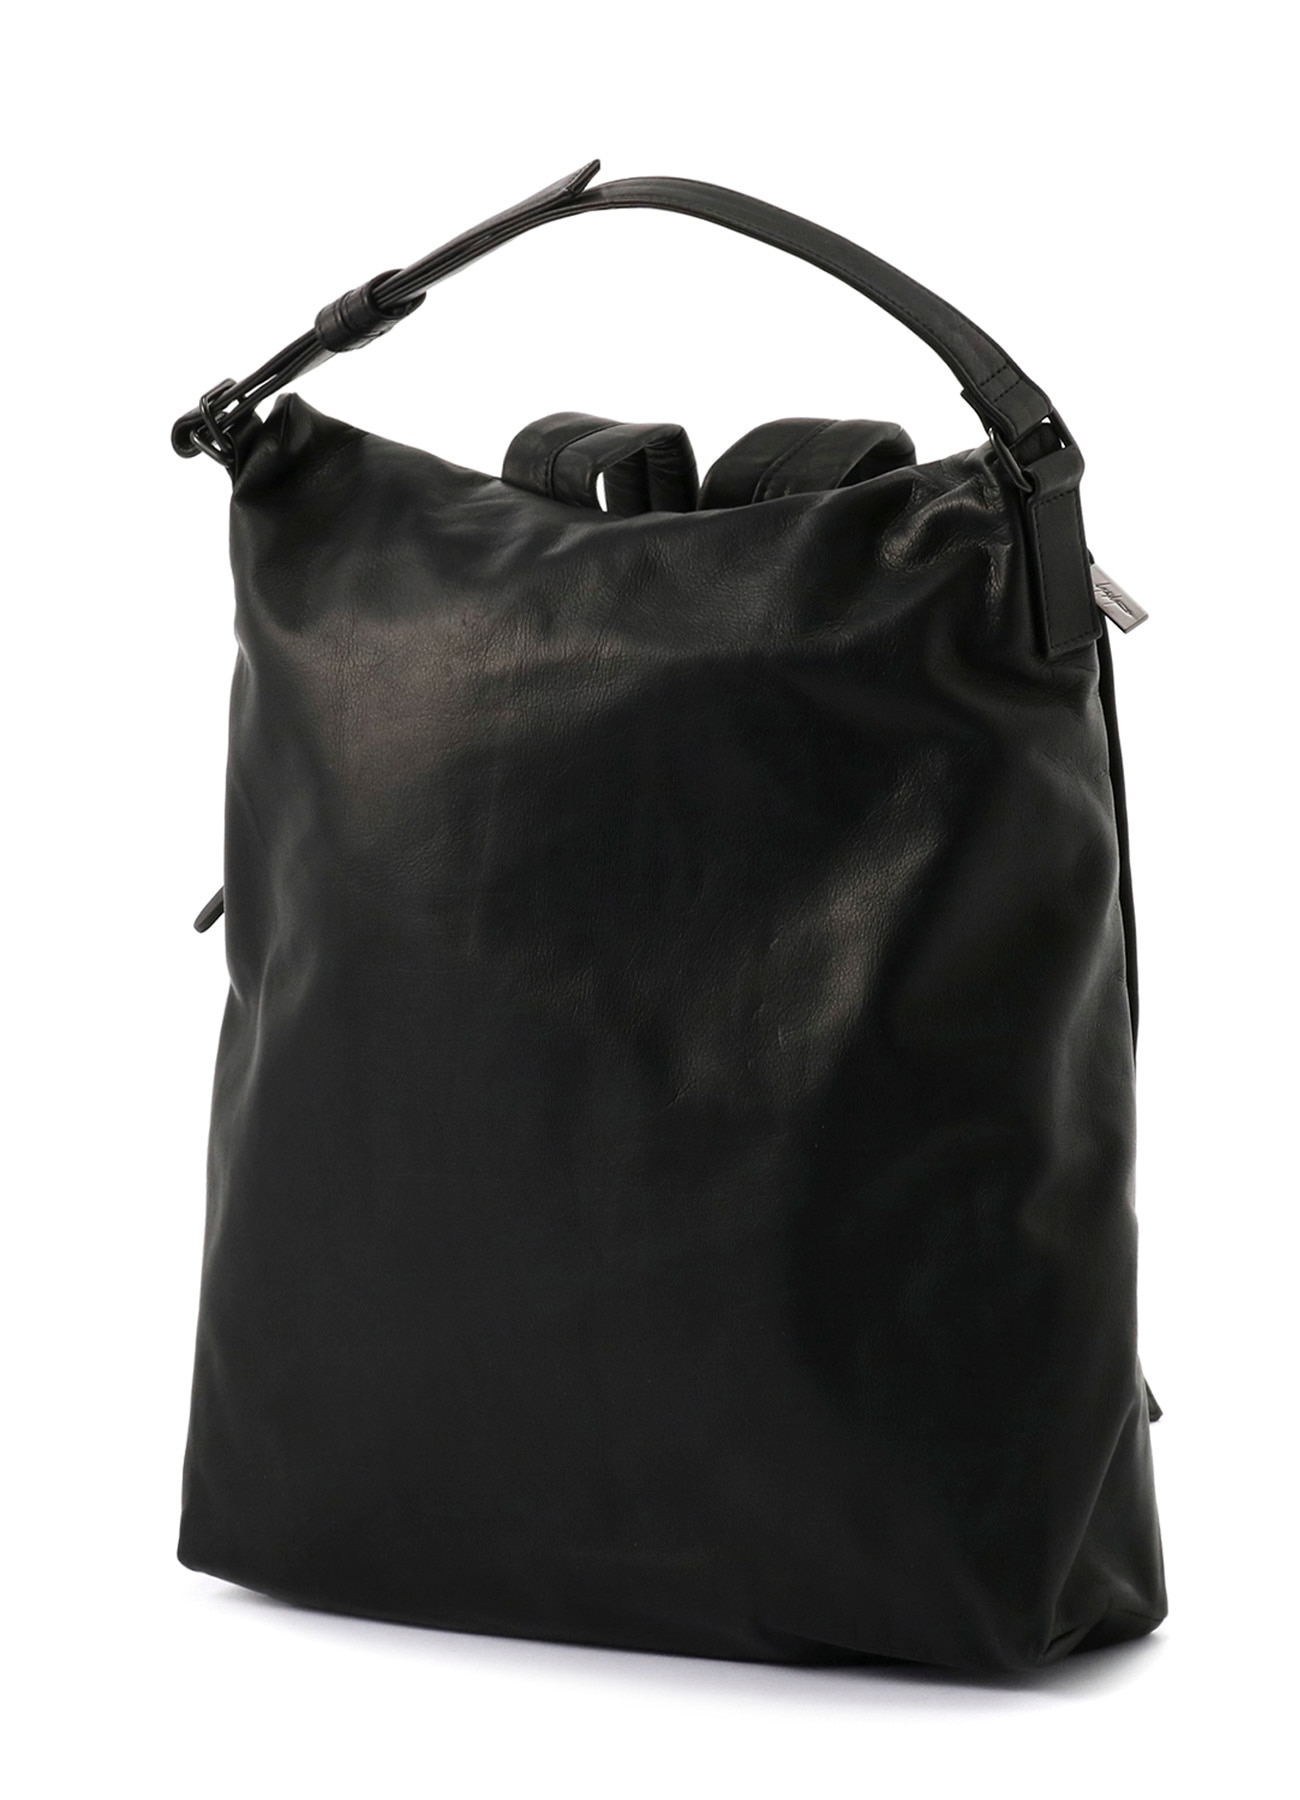 Garment leather daypack